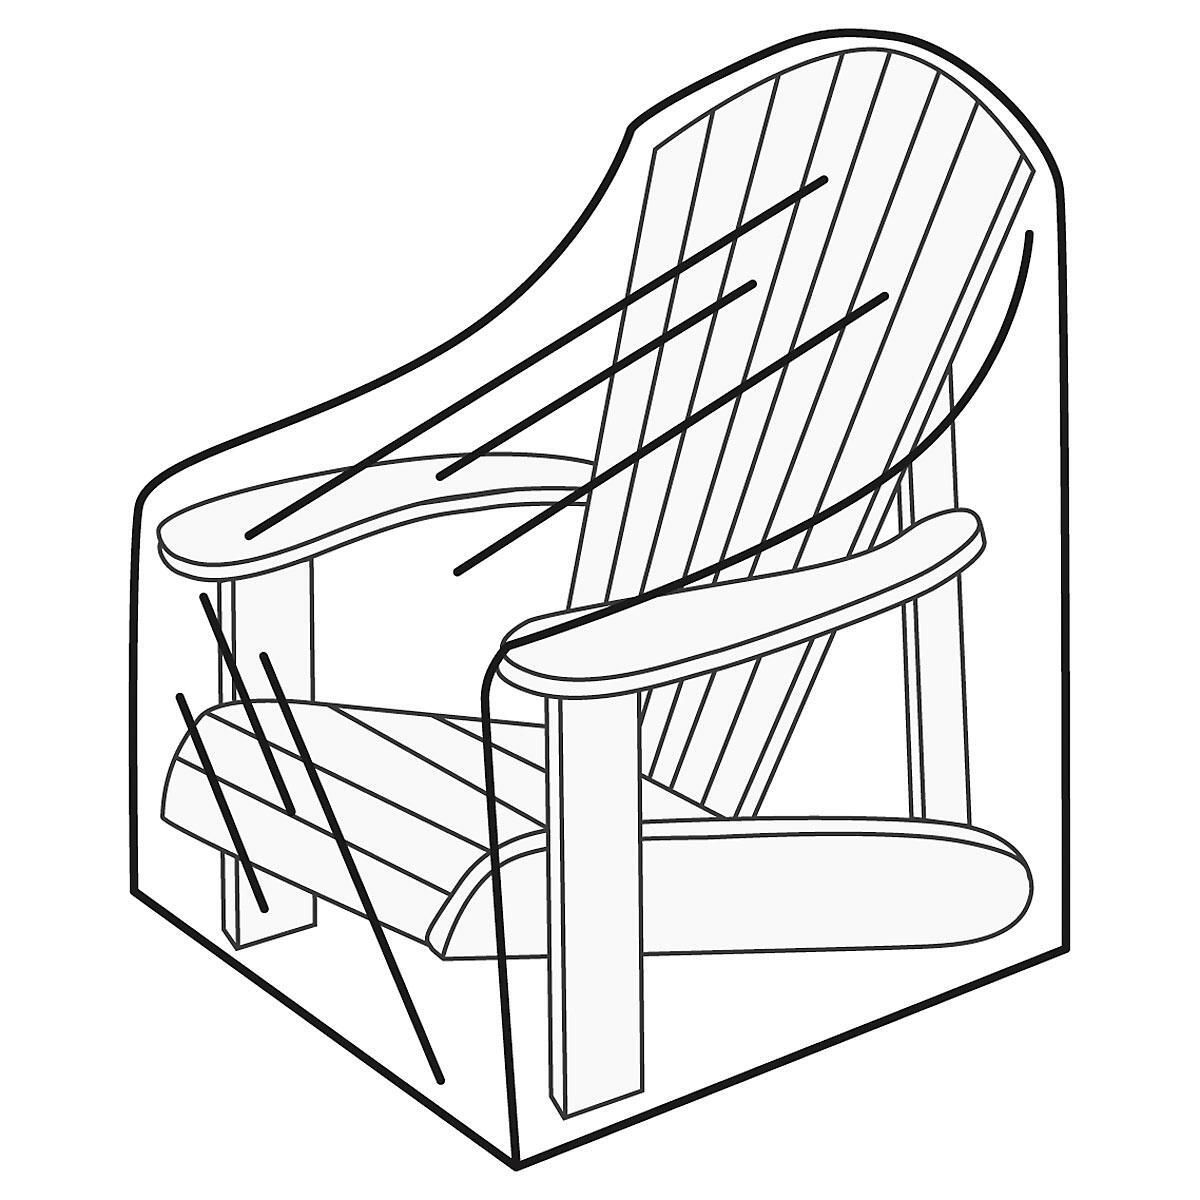 Adirondack chairs drawing - Adirondack Chair Cover